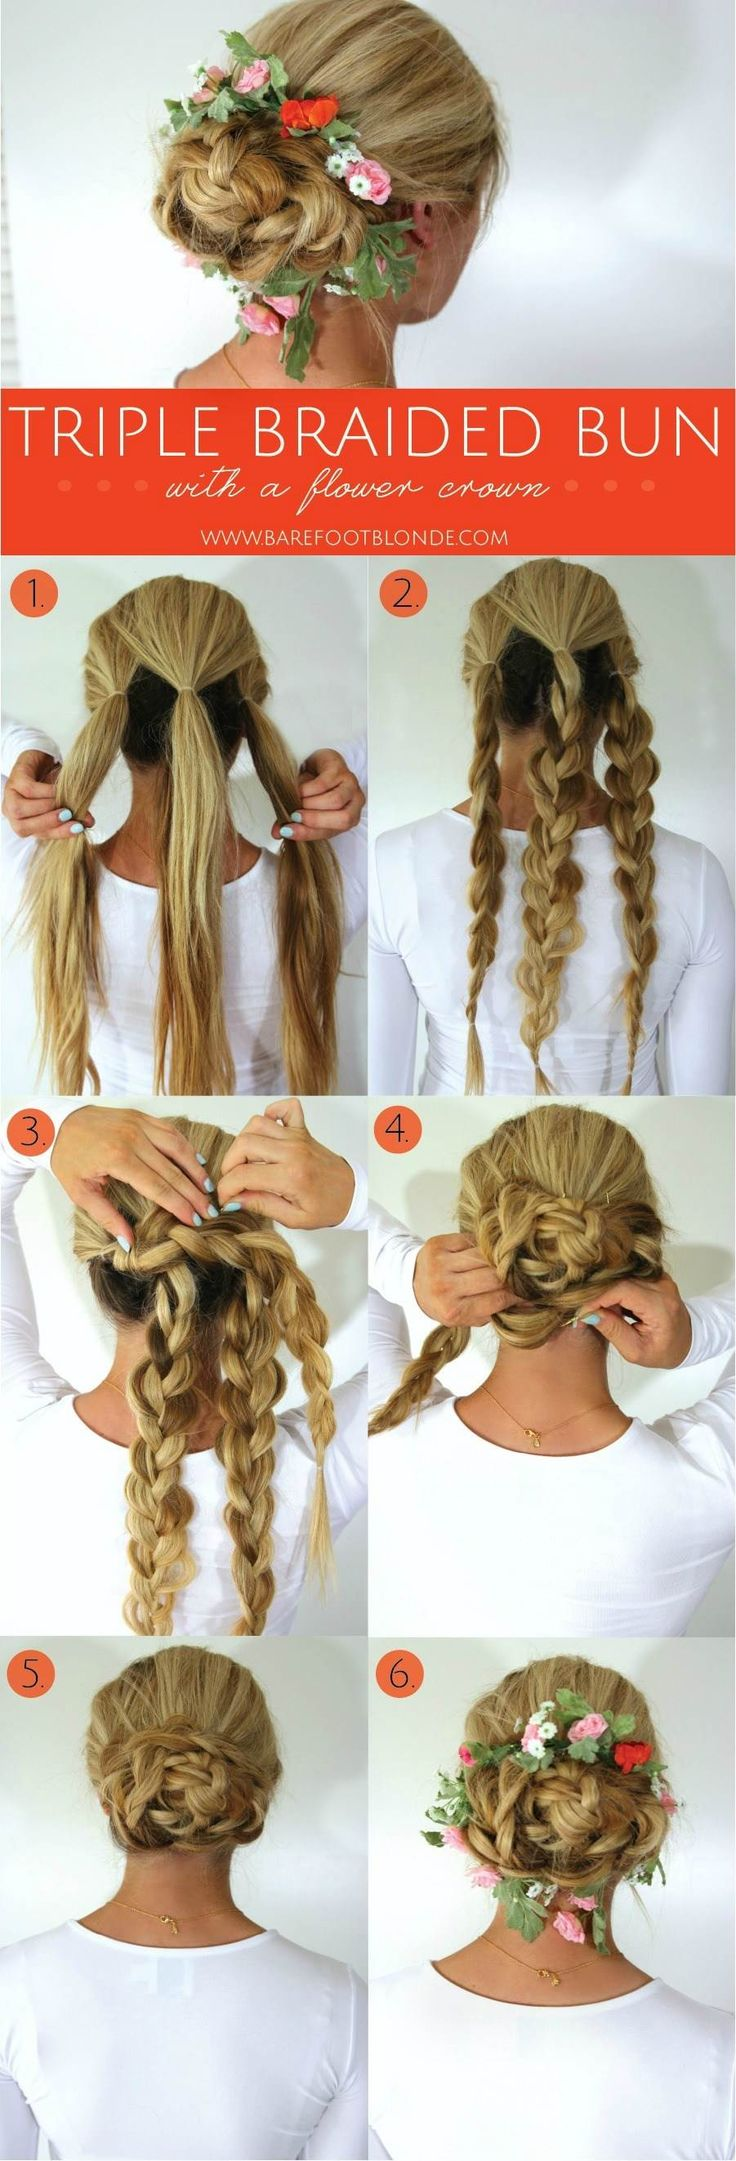 10 Of The Best Braided Hairstyles